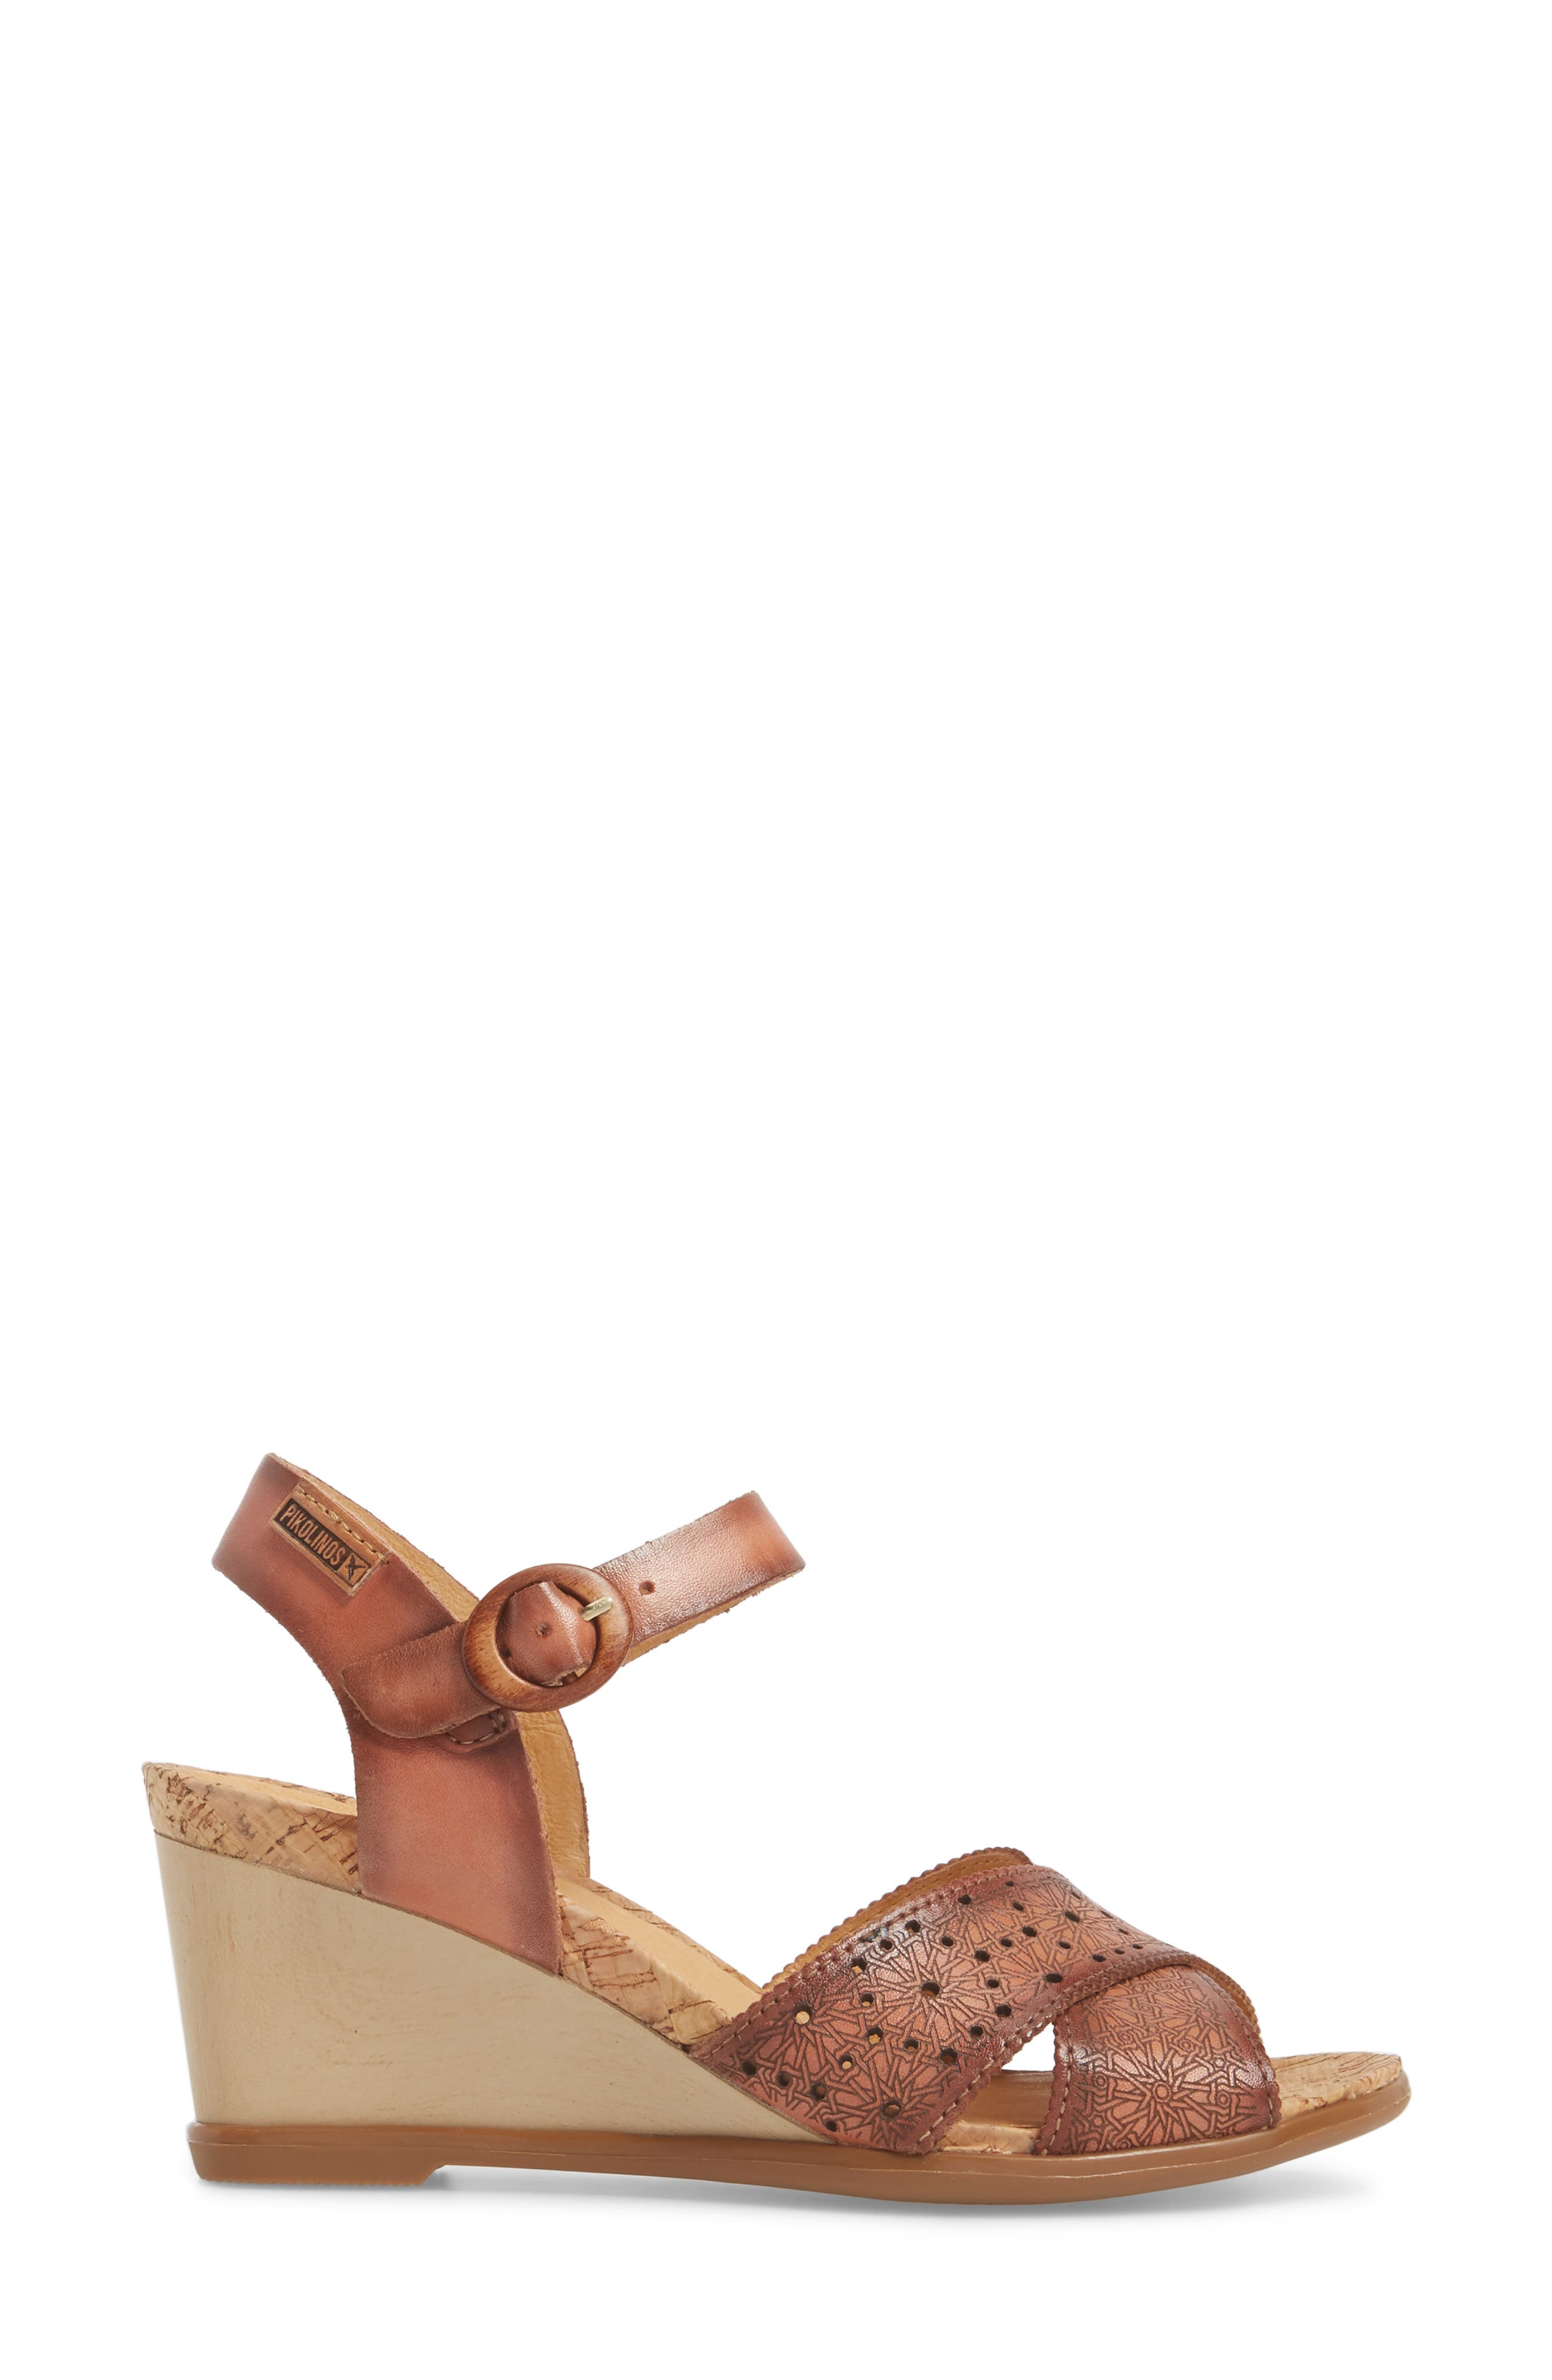 Vigo Wedge Sandal,                             Alternate thumbnail 3, color,                             FLAMINGO LEATHER